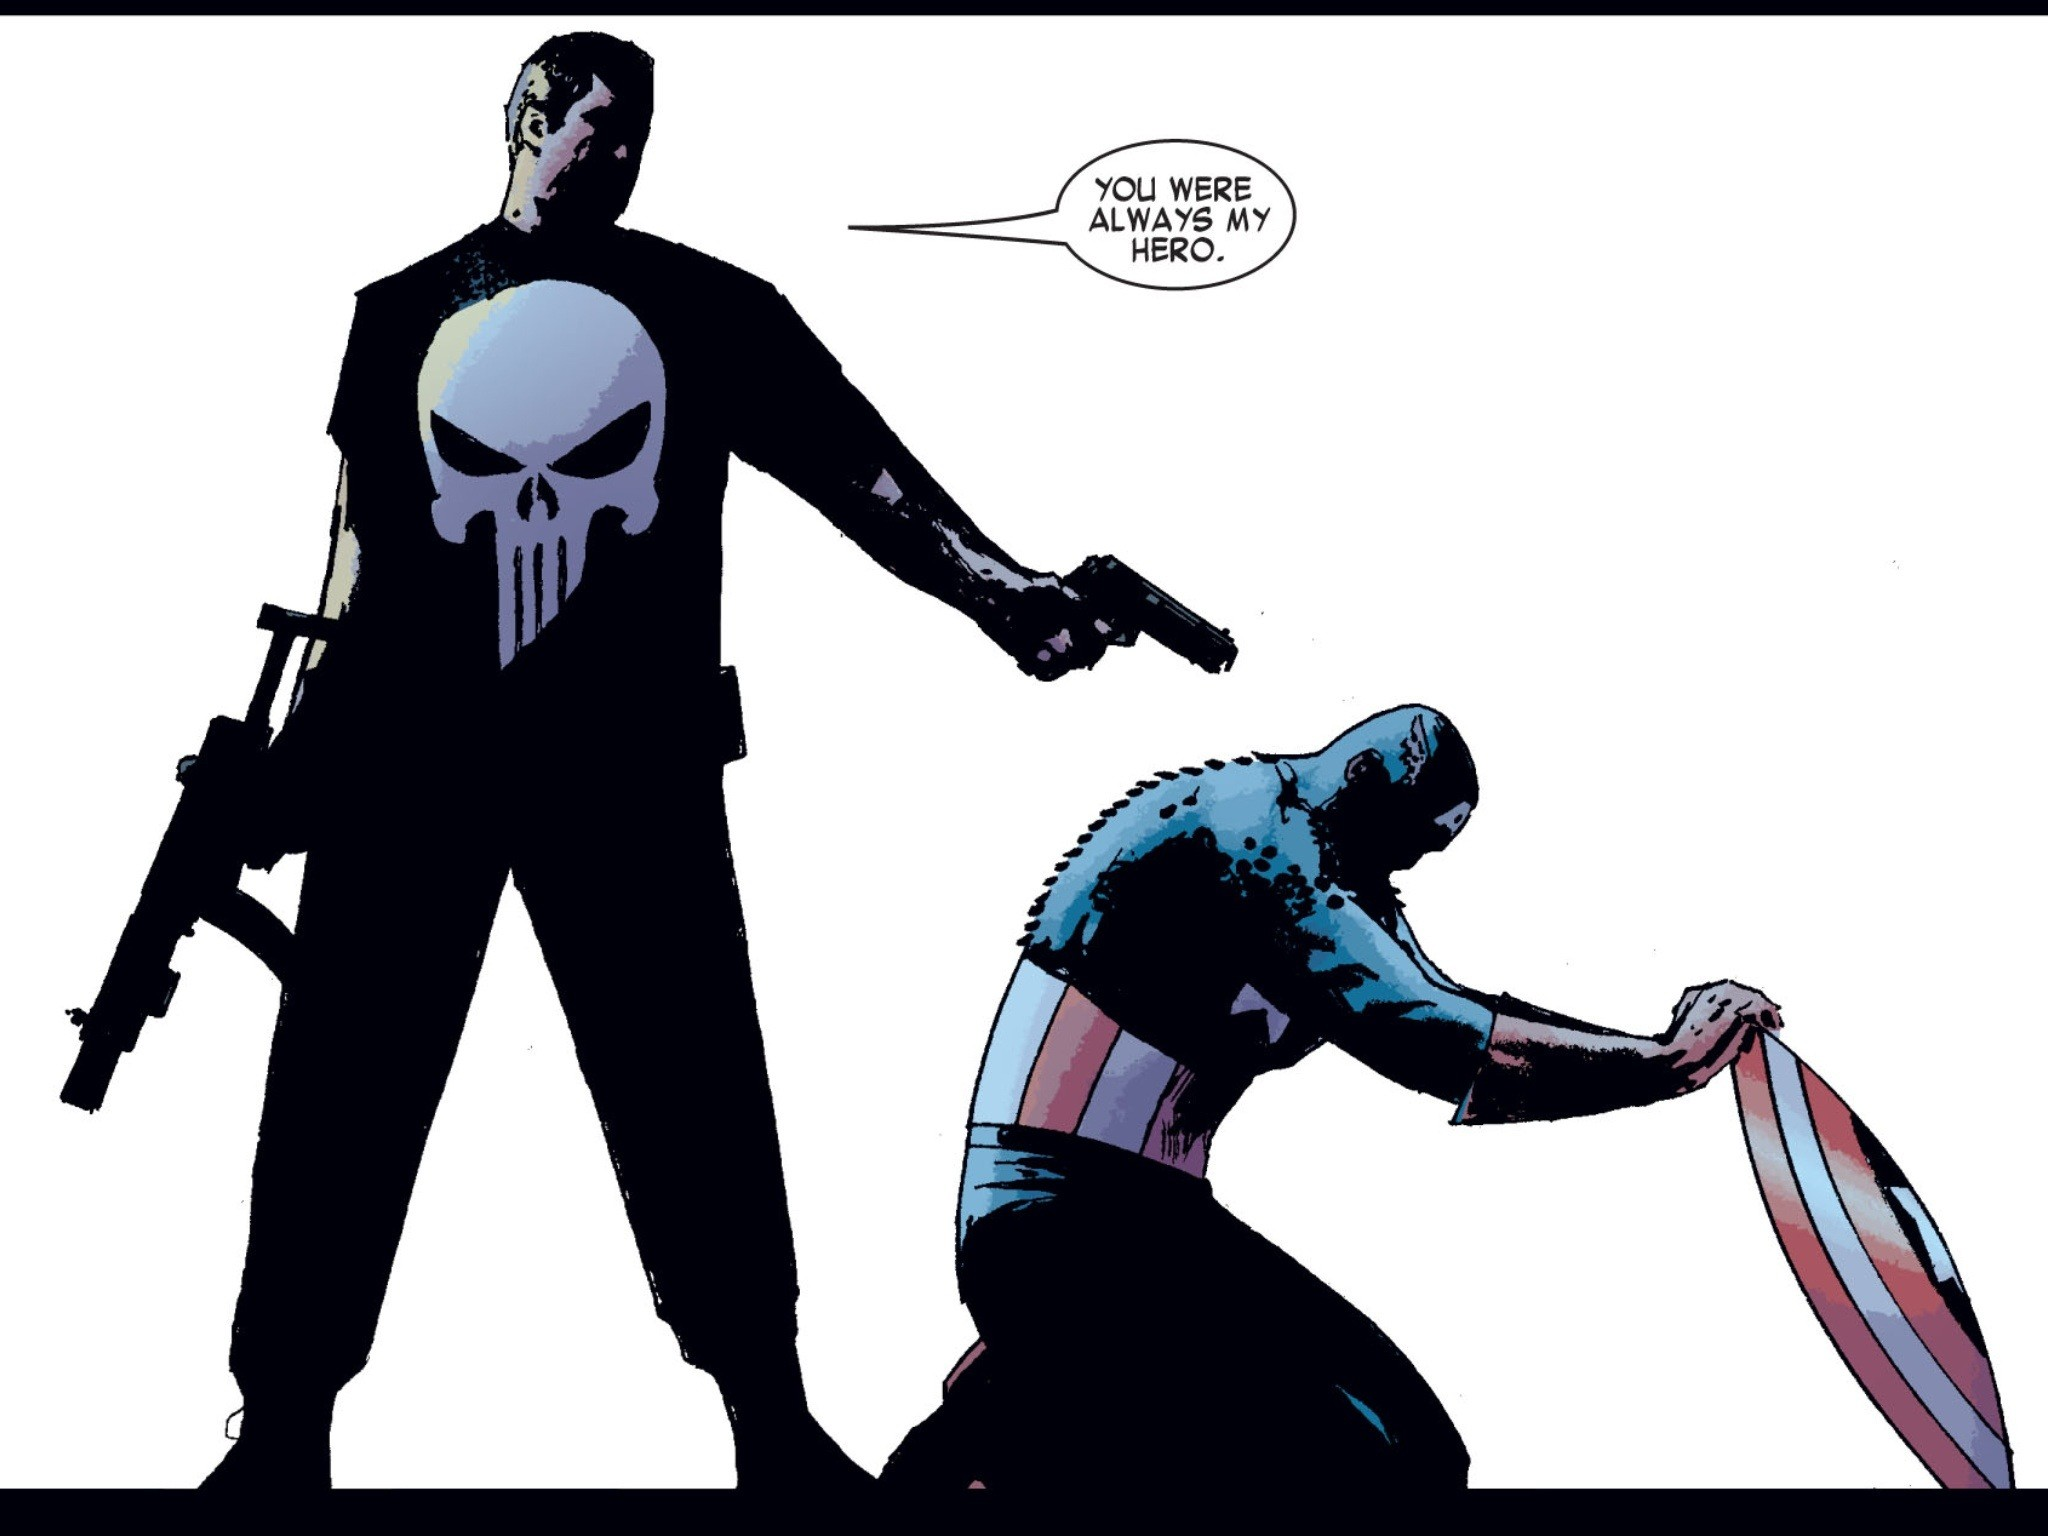 Reminds me of this from The Punisher …